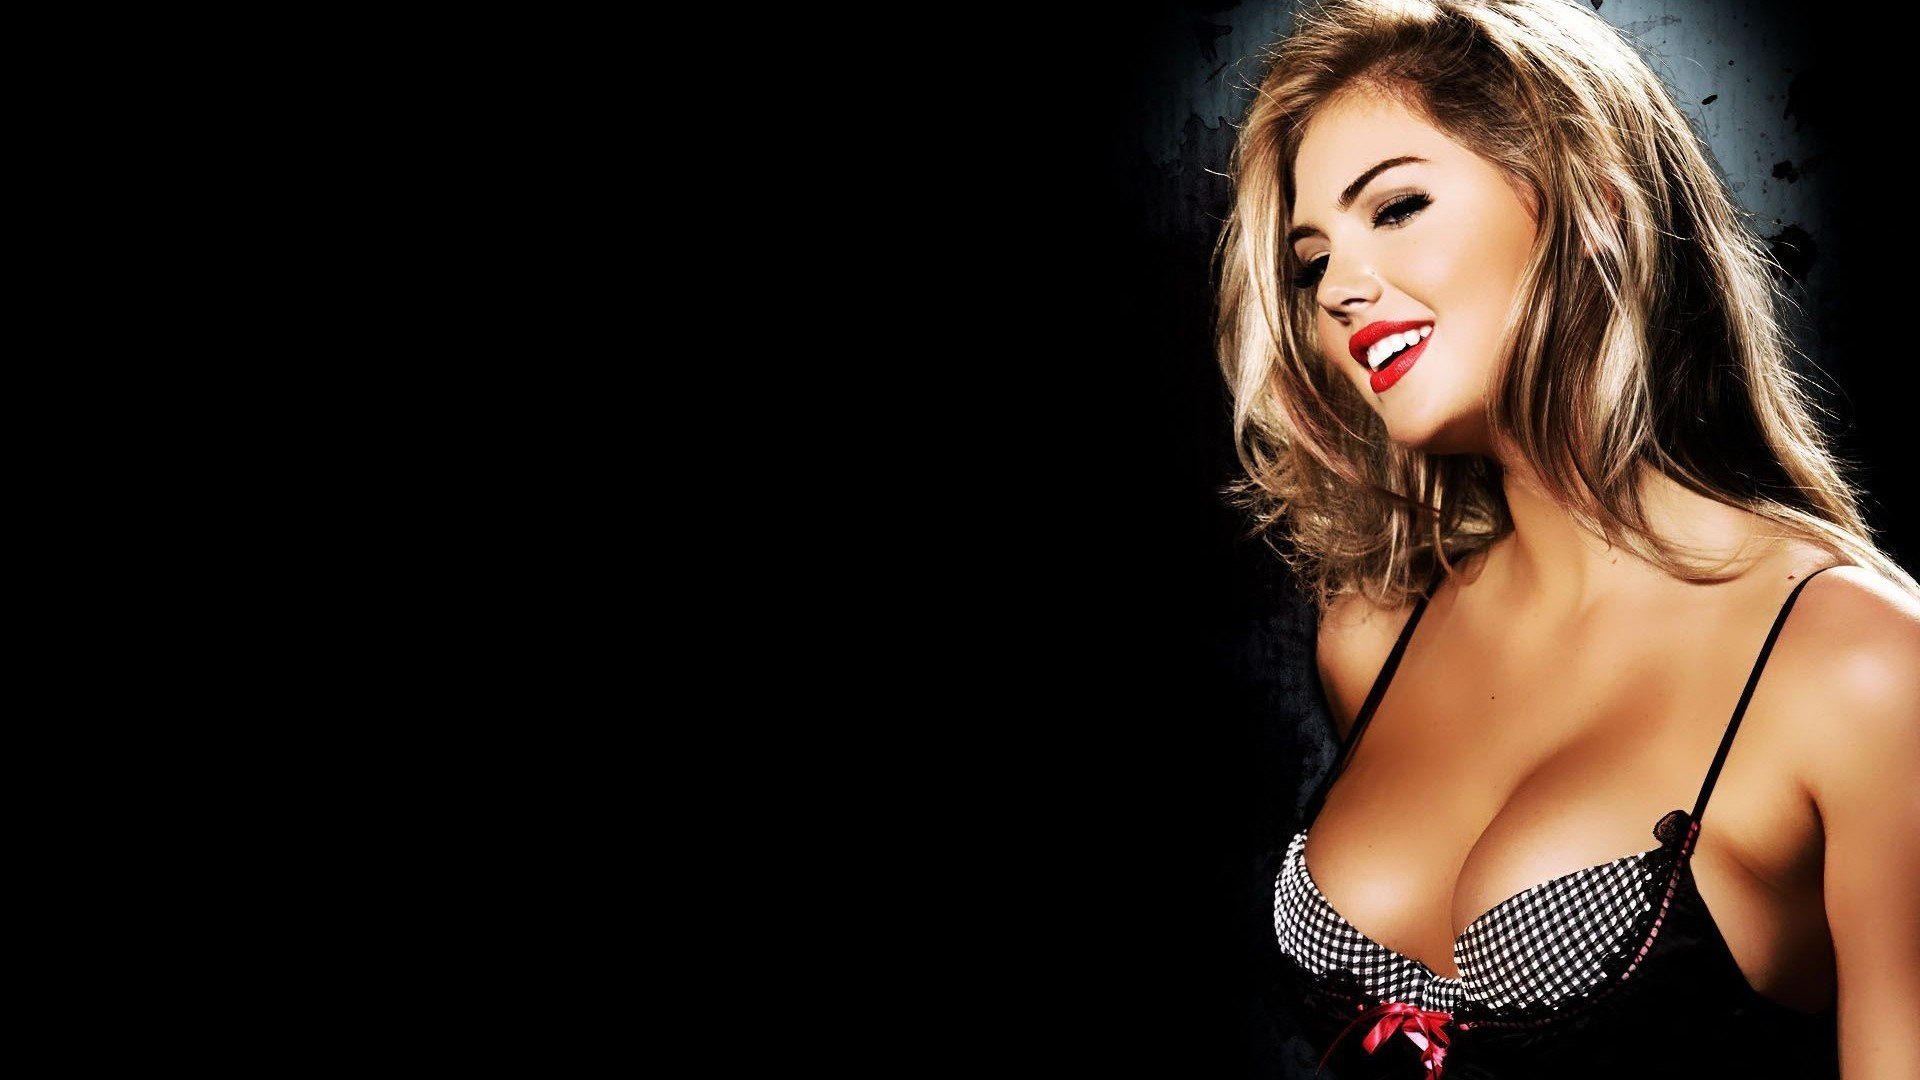 Kate Upton 1080p Wallpaper 77 Images